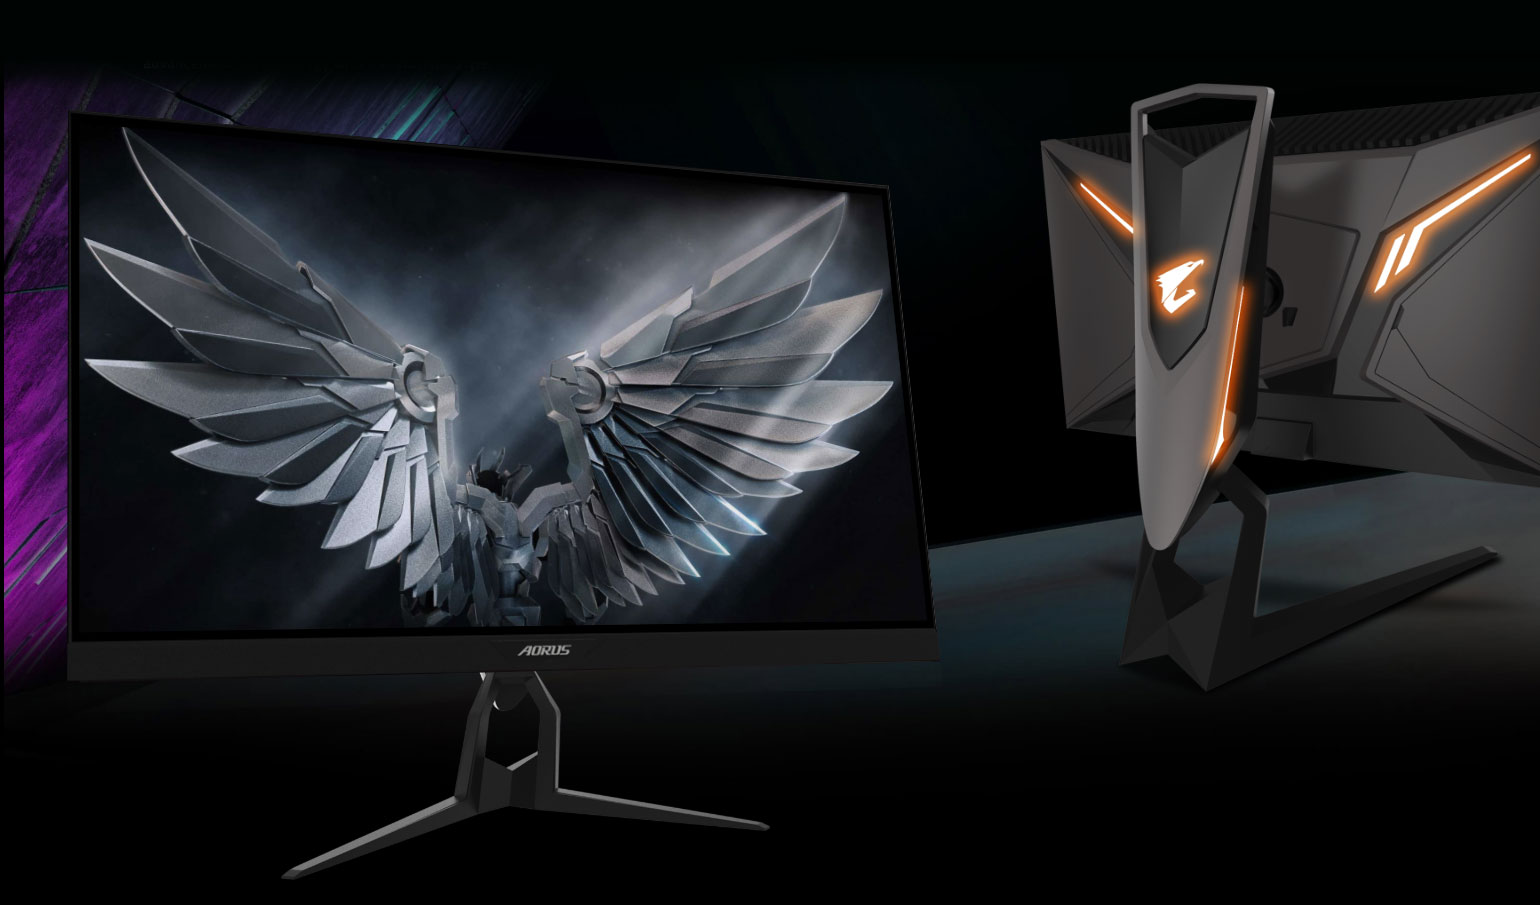 two monitors , one is facing front and the other is showing back of the GIGABYTE AORUS Monitor